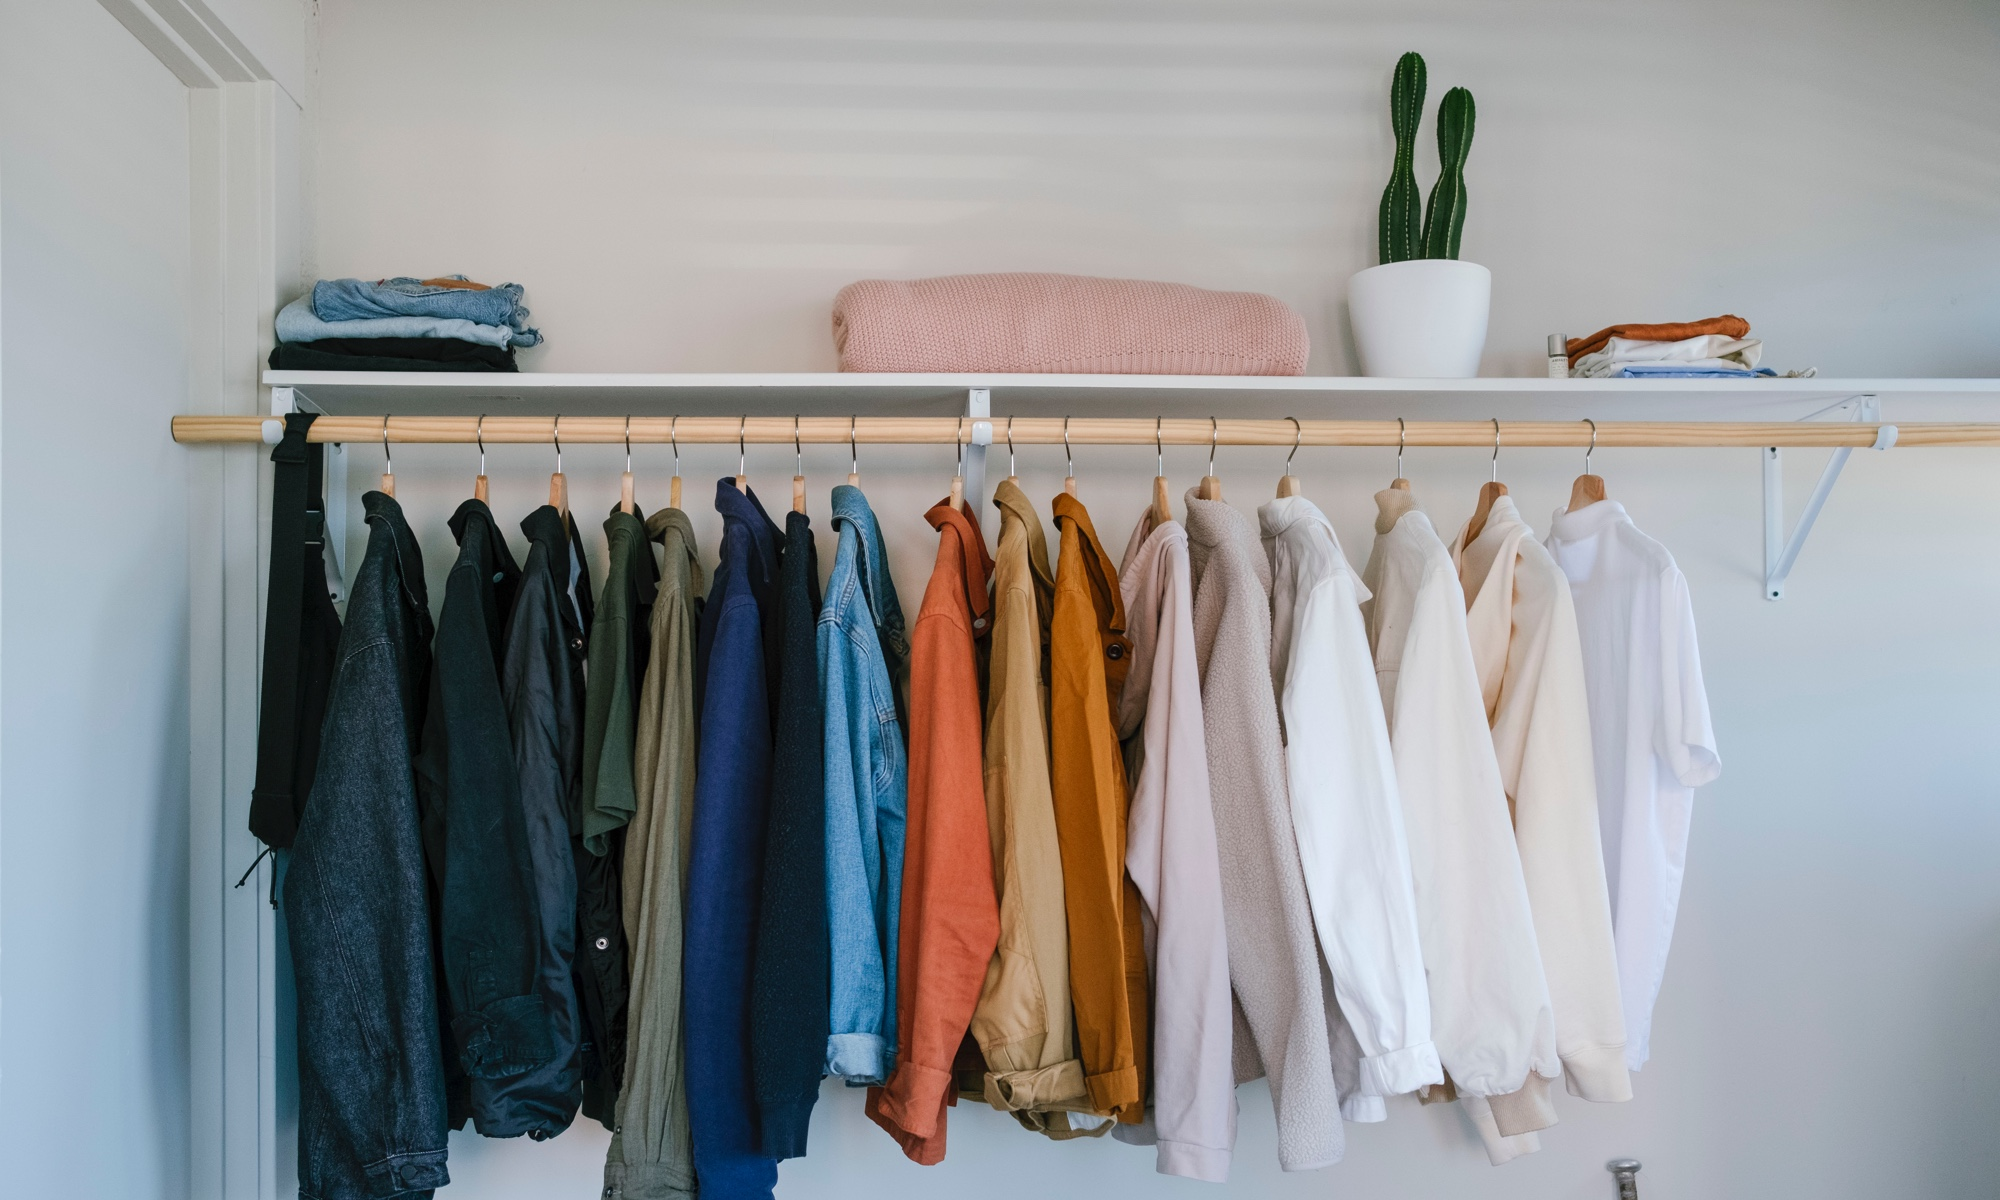 A curated wardrobe seems well-matched with the space.